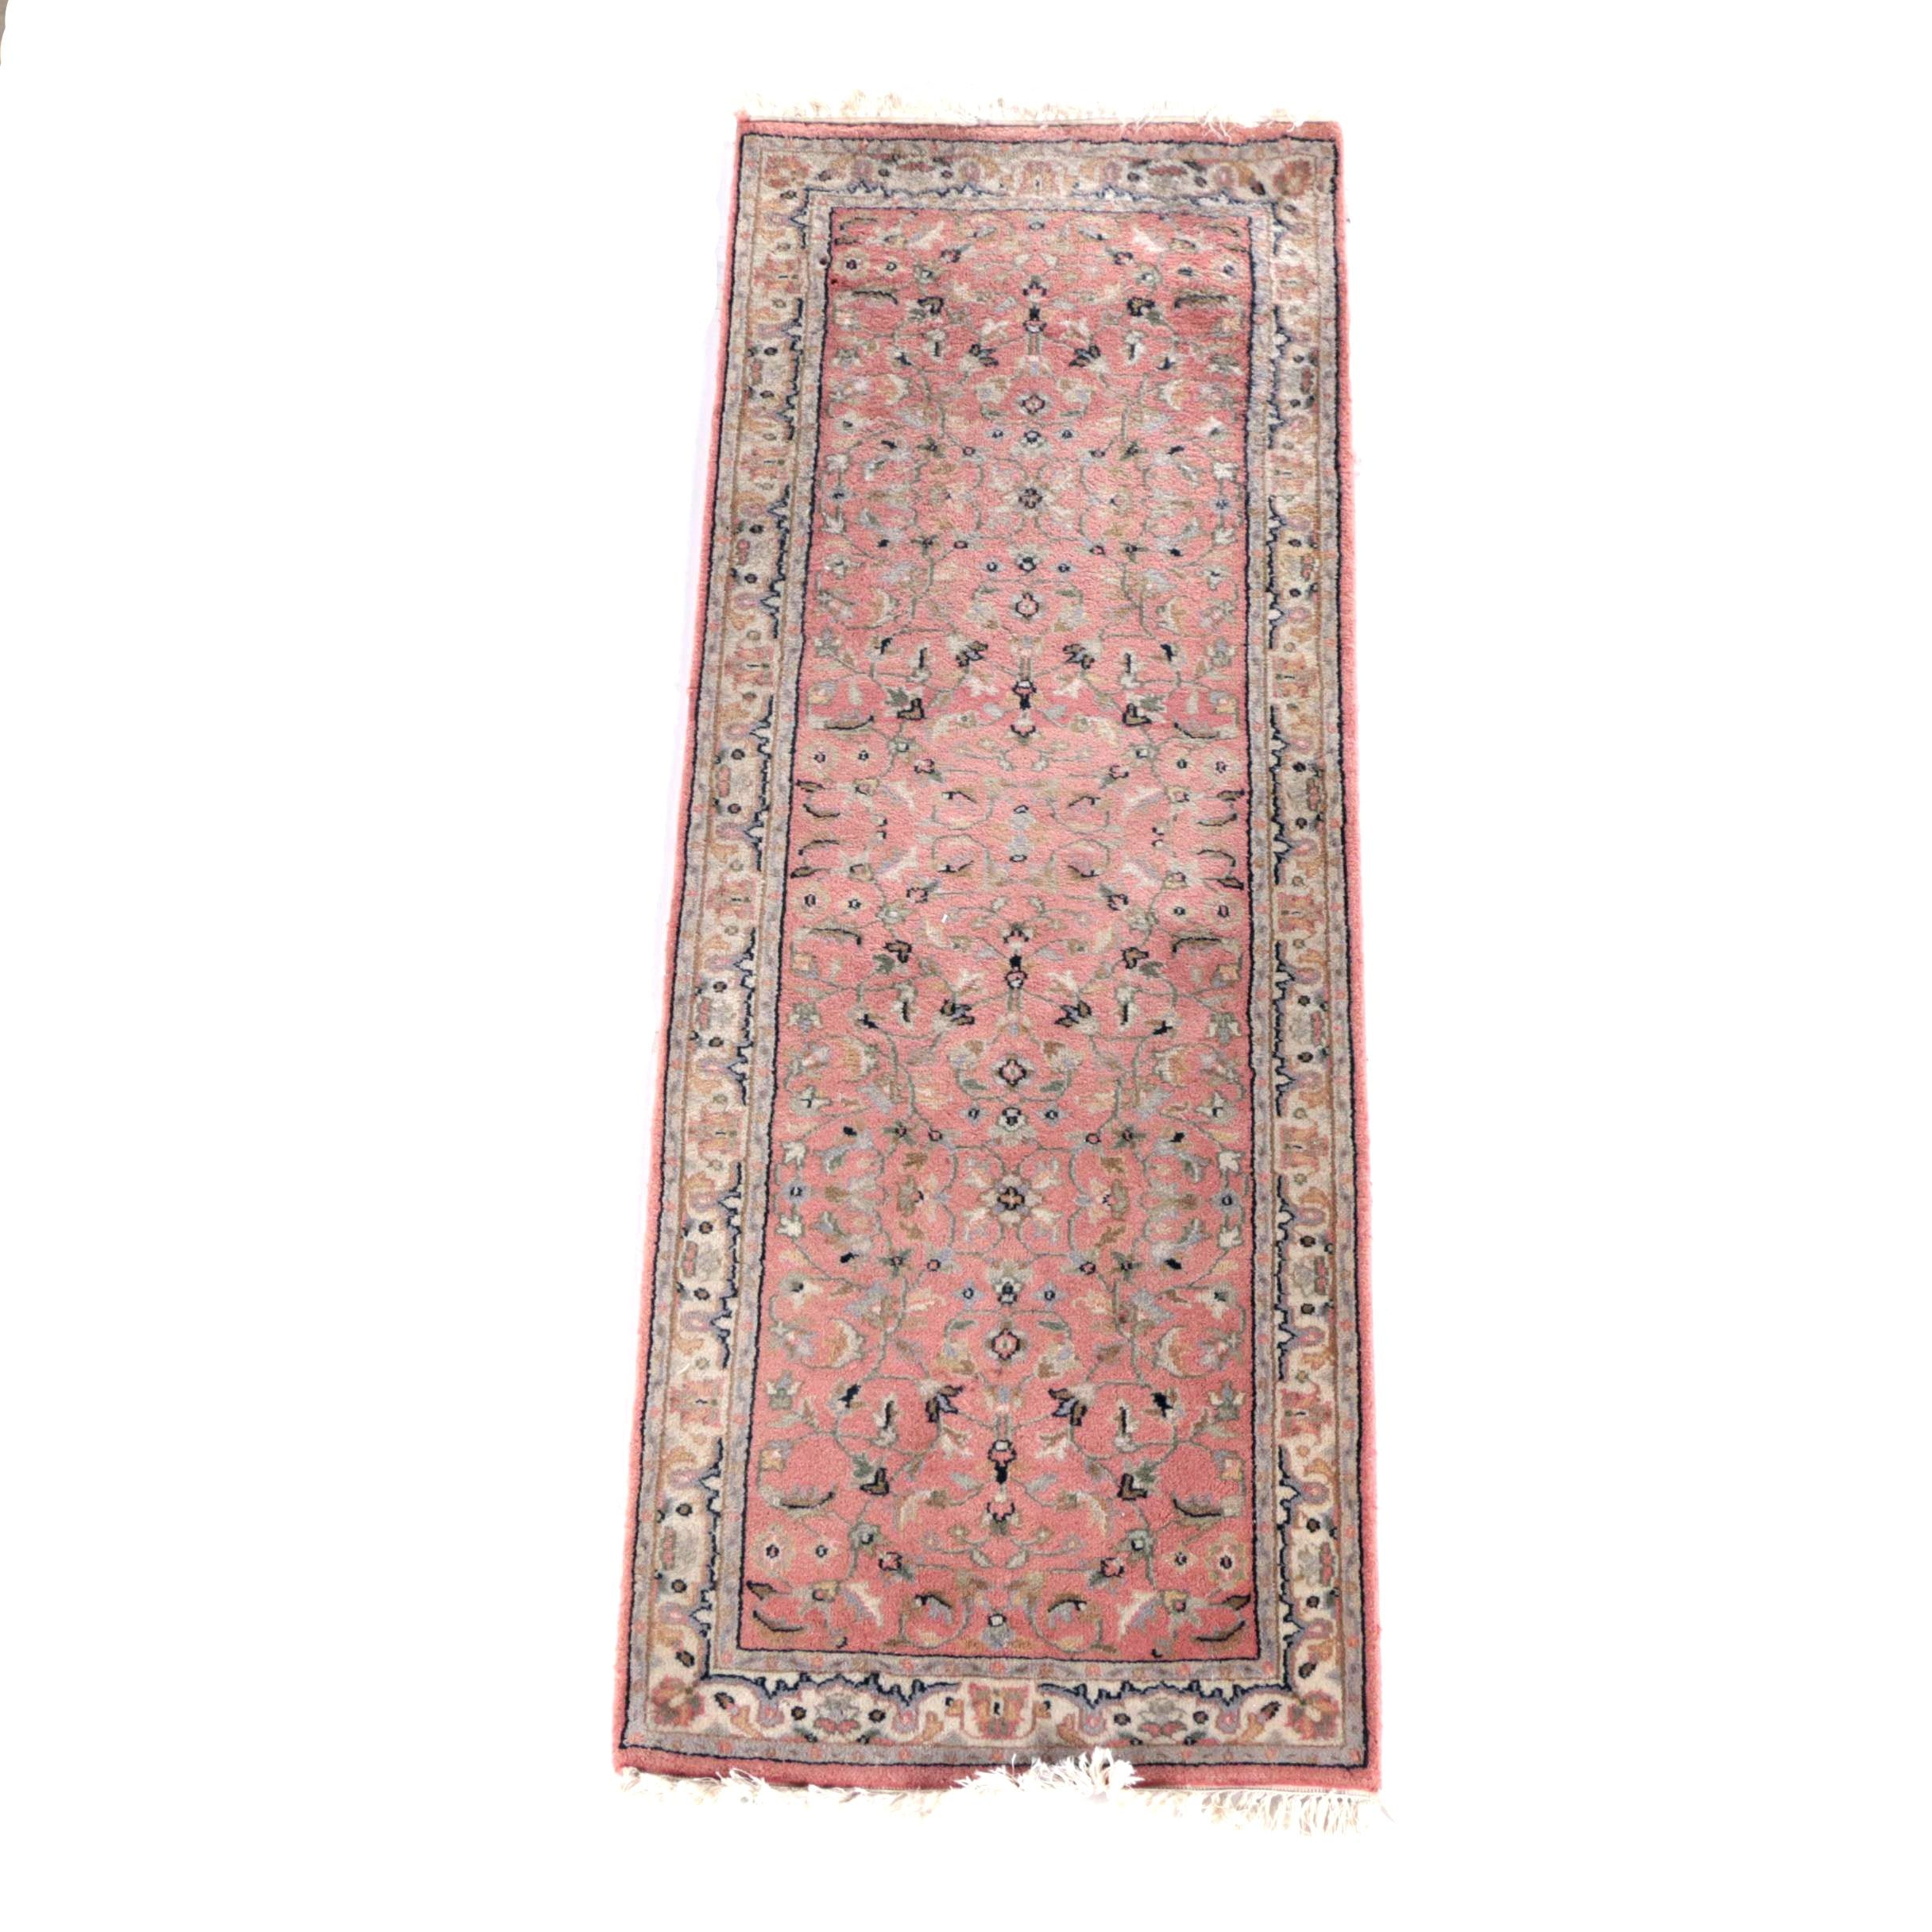 Vintage Hand-Knotted Sino-Persian Wool Carpet Runner